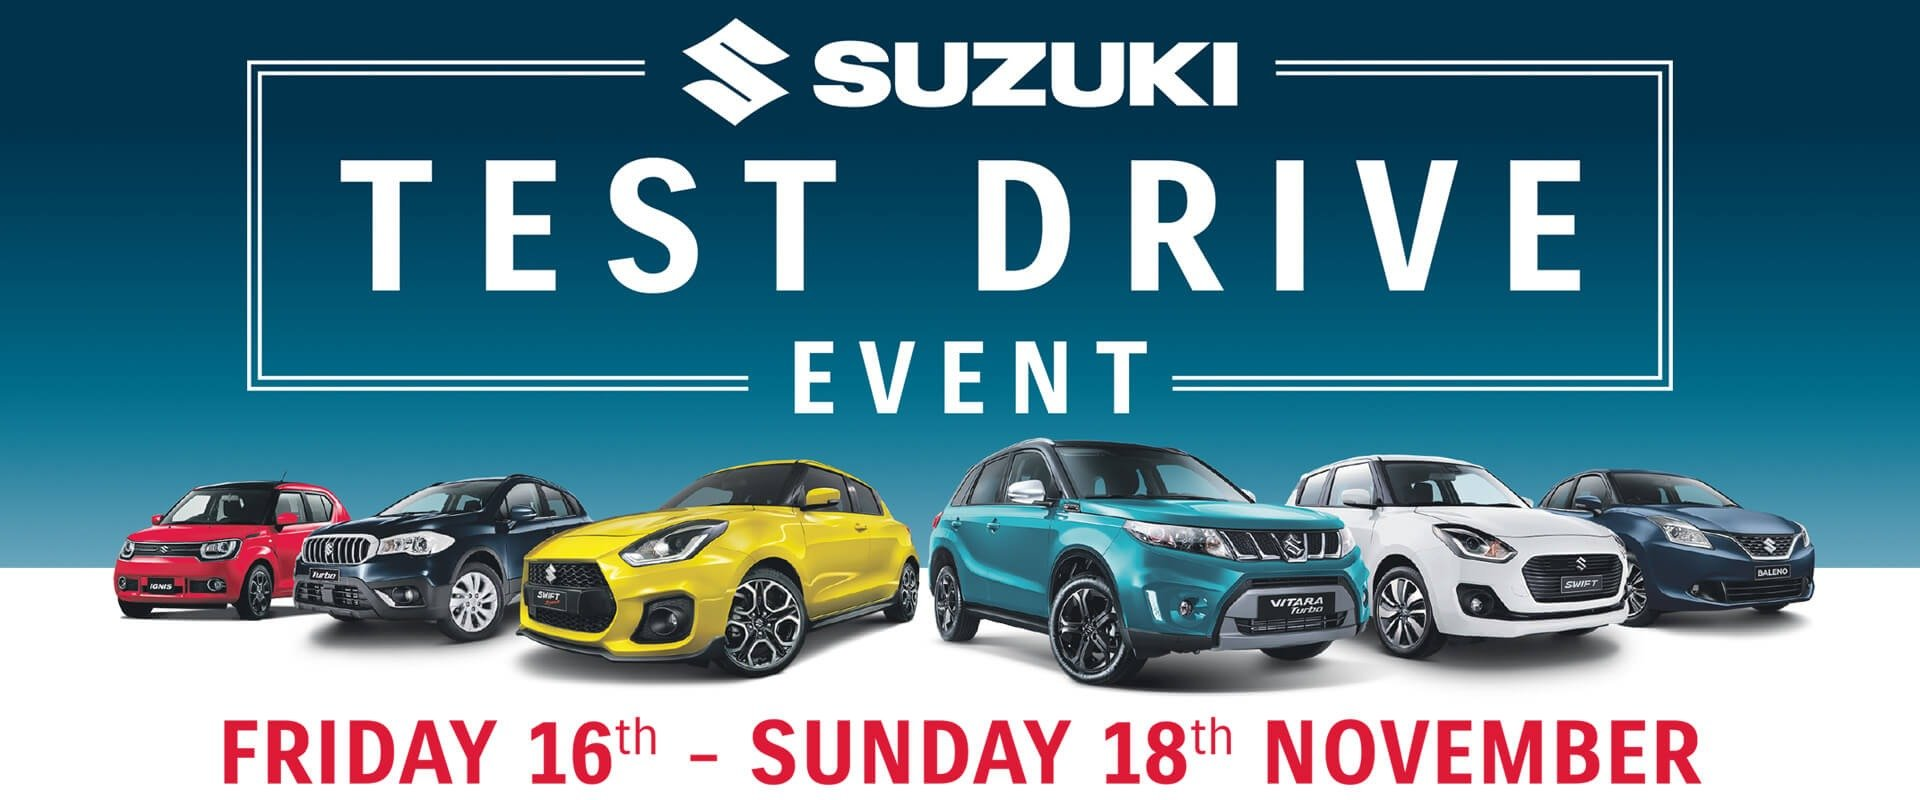 Suzuki Test Drive event